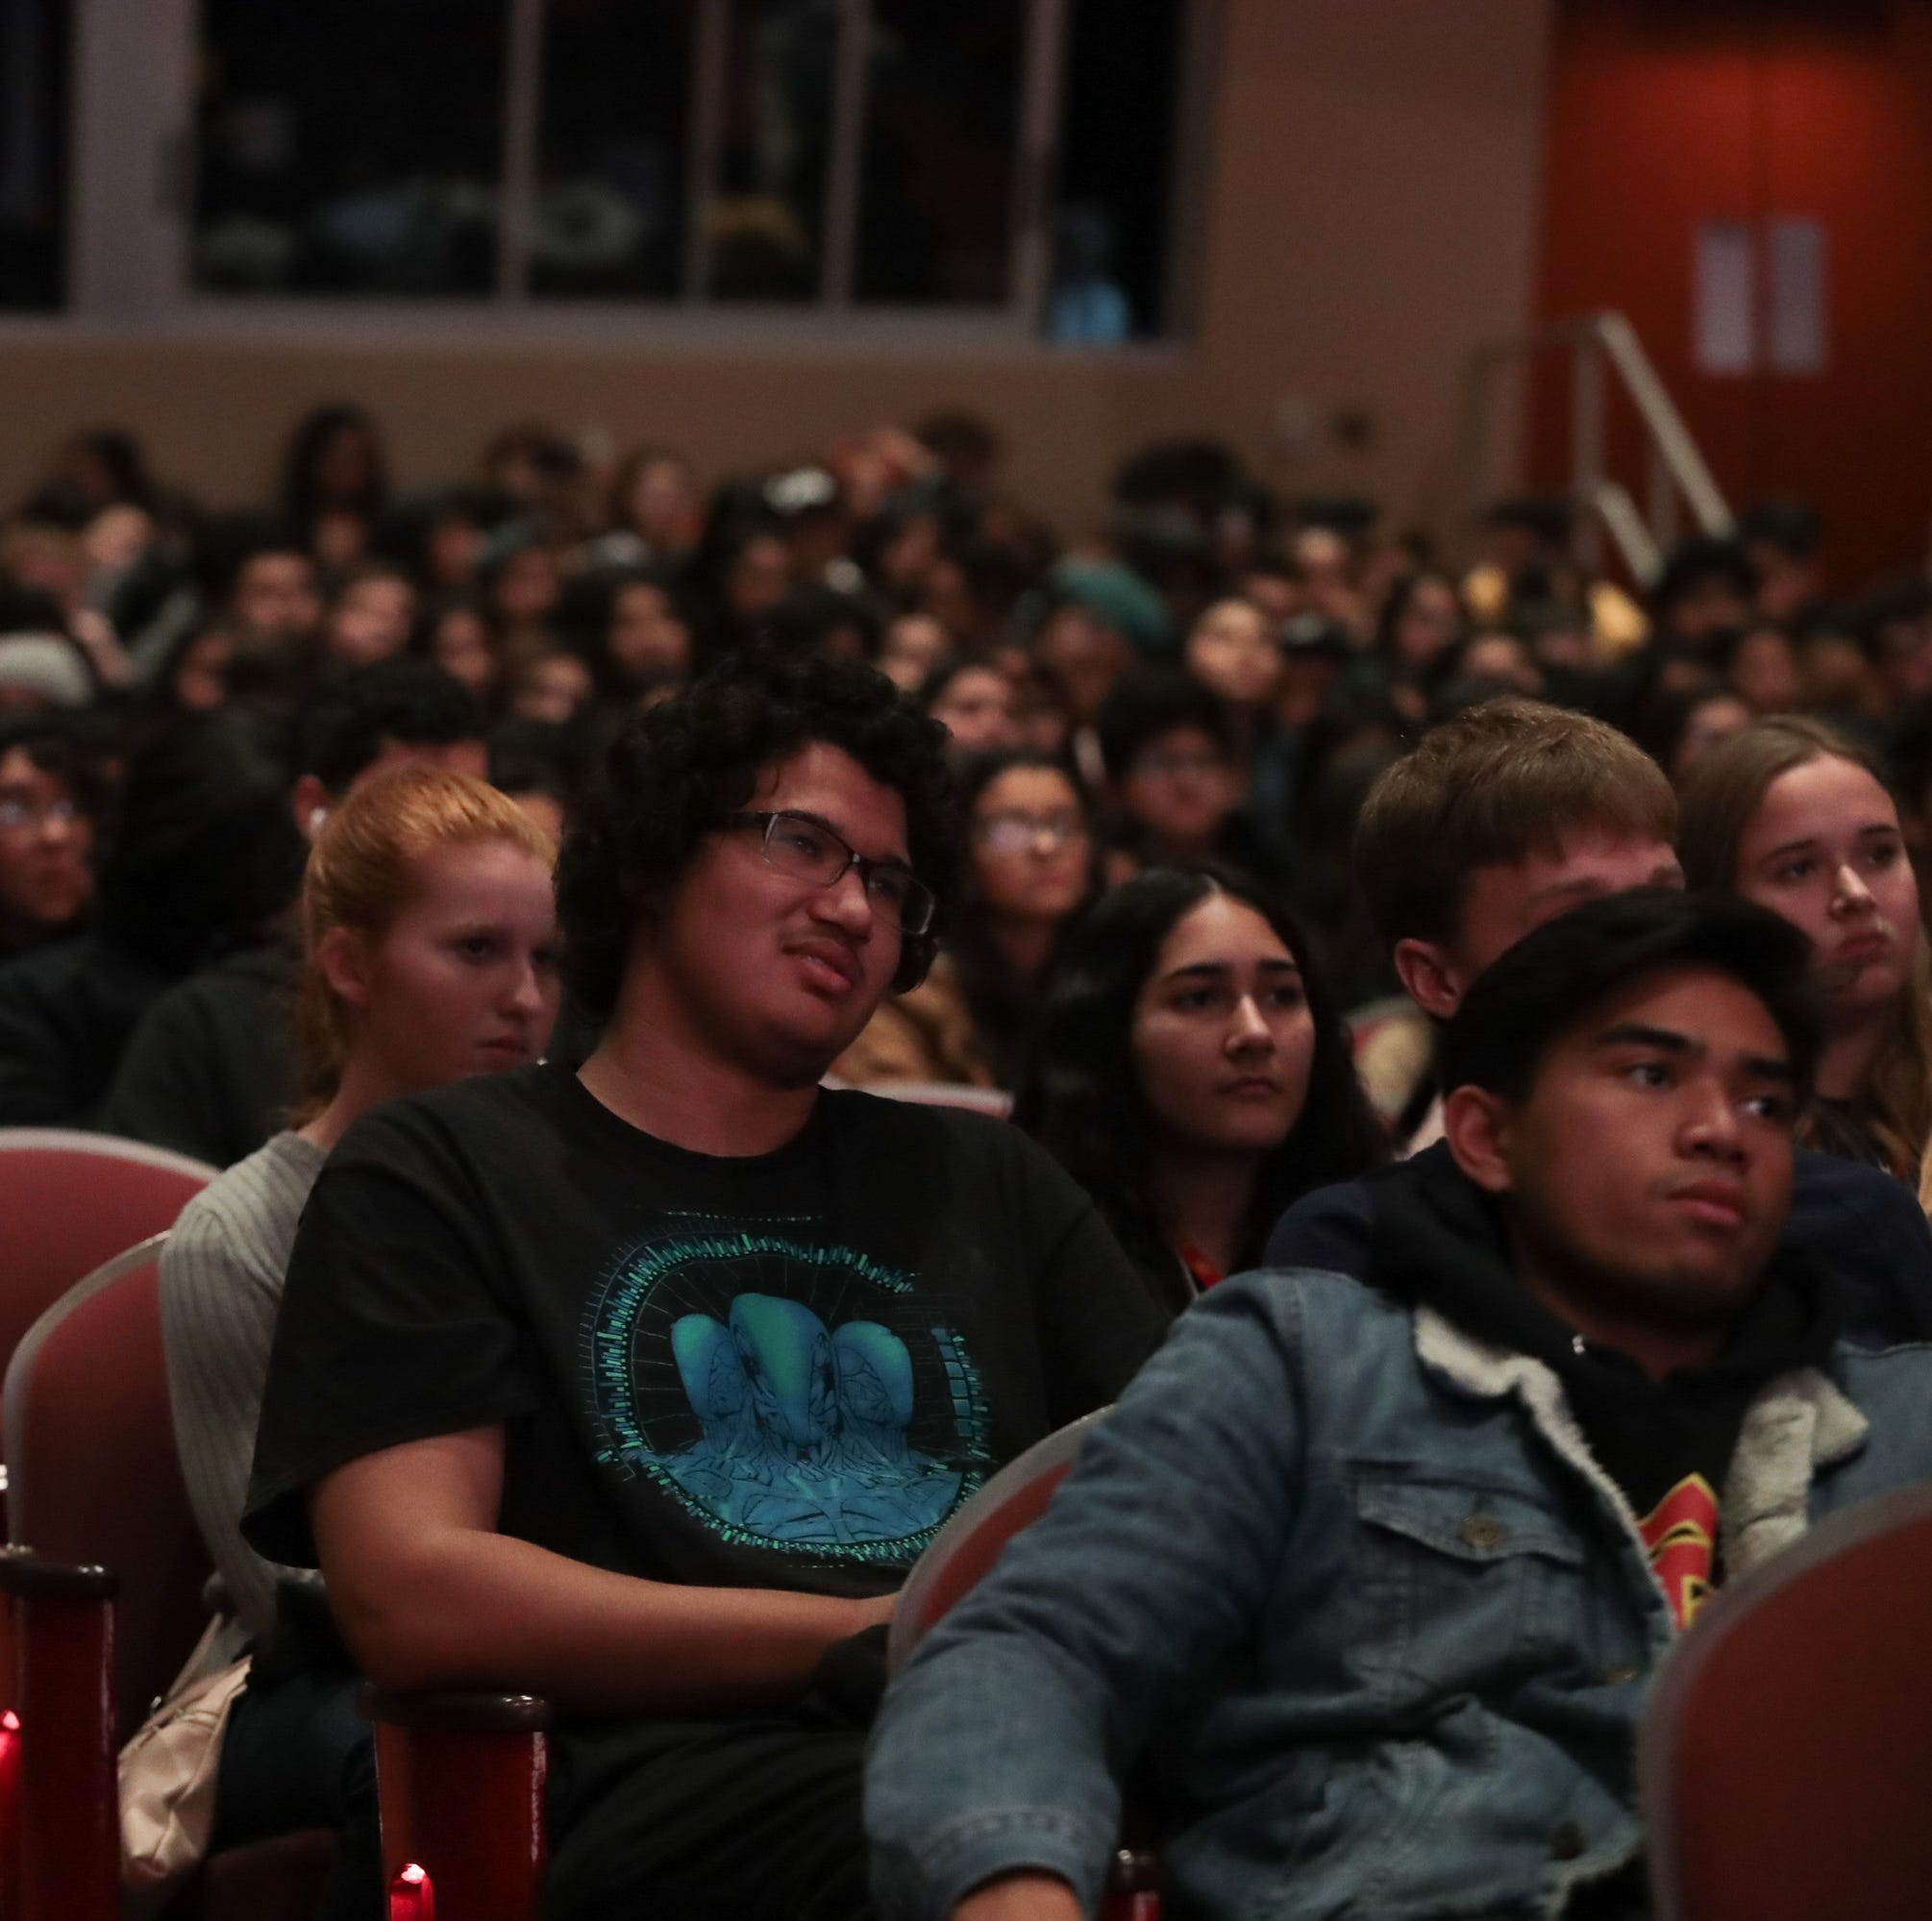 Palm Springs film festival gathers students for unique 'communal cinema experience'